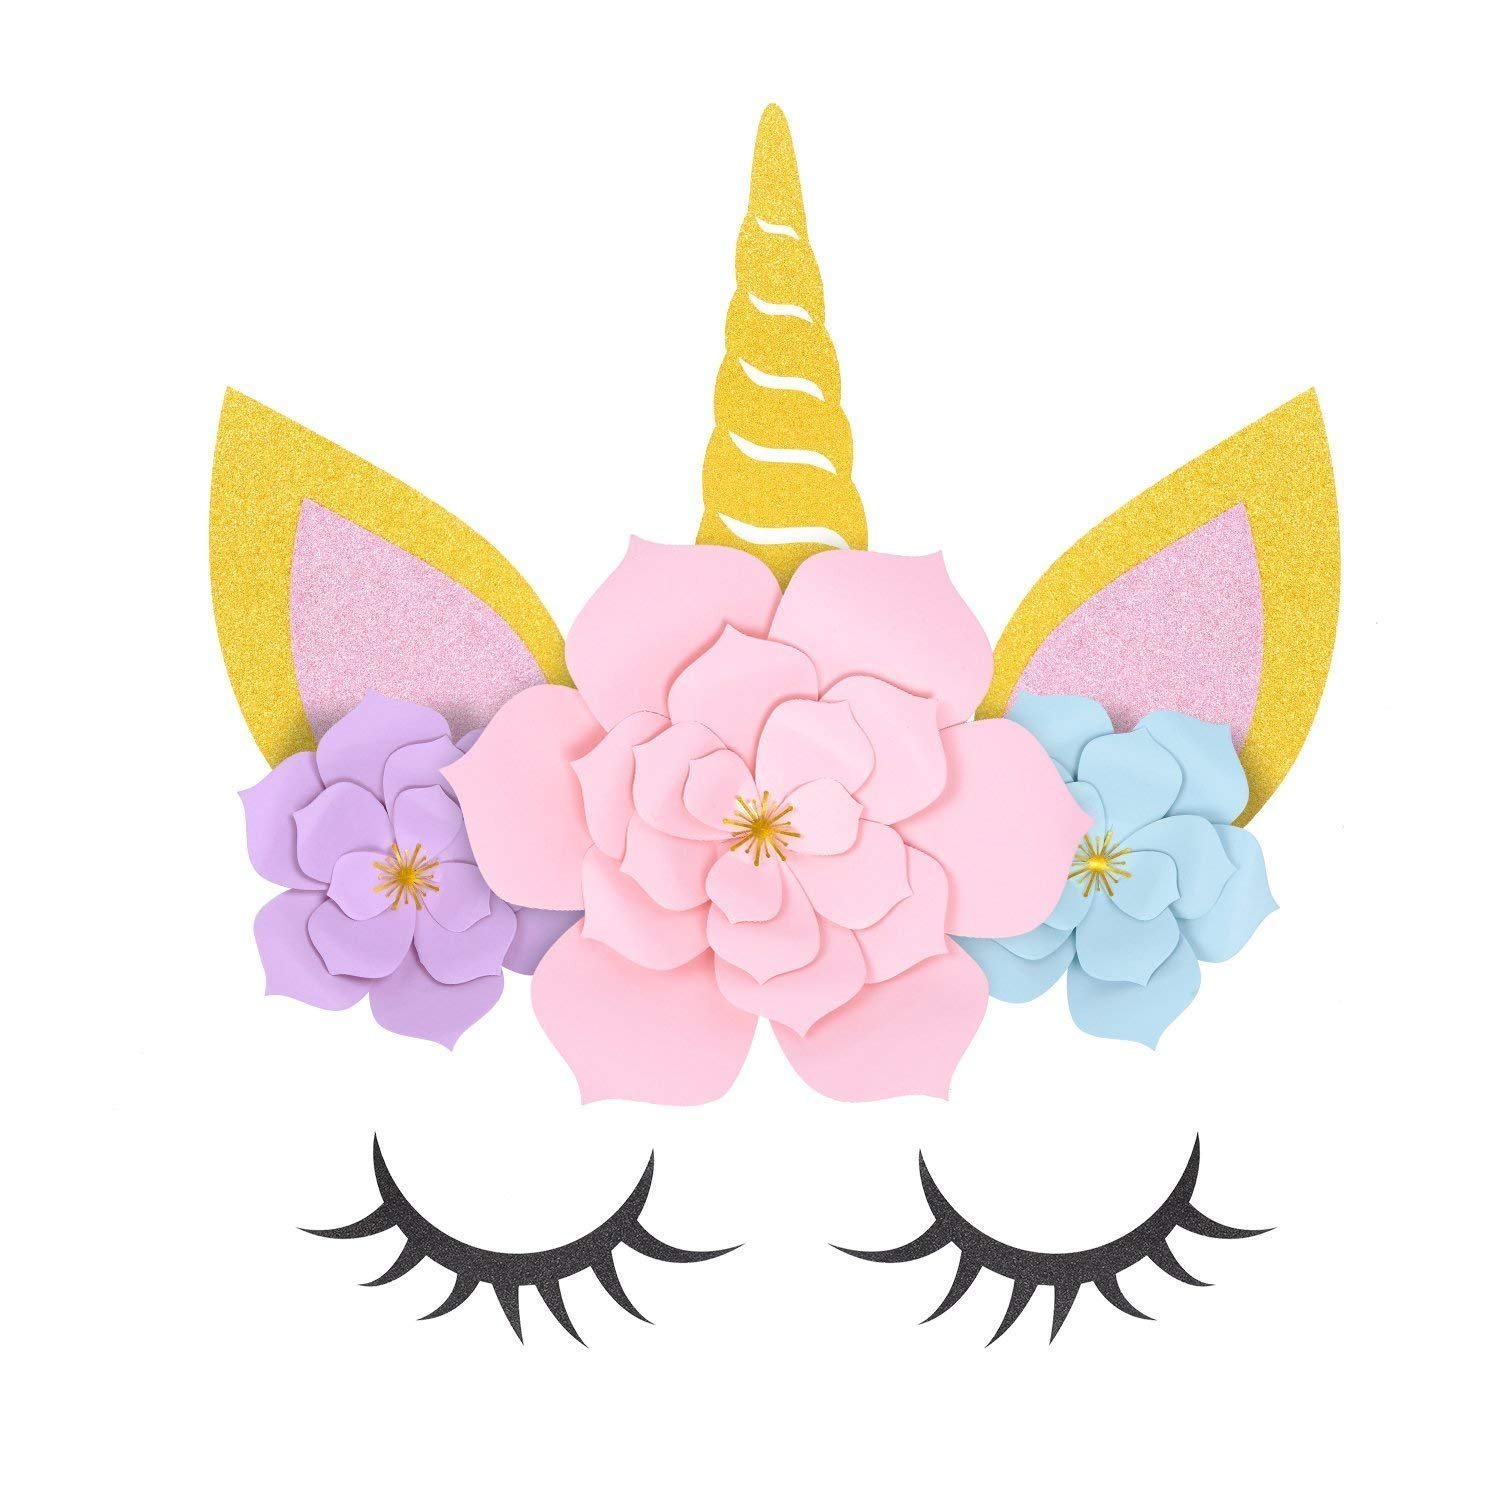 Crisky Unicorn Party Supplies and Decorations Backdrop for Girls Birthday Party Baby shower - DIY Unicorn Flower Backdrop with Glitter Giant Horn Ears Eyelashes